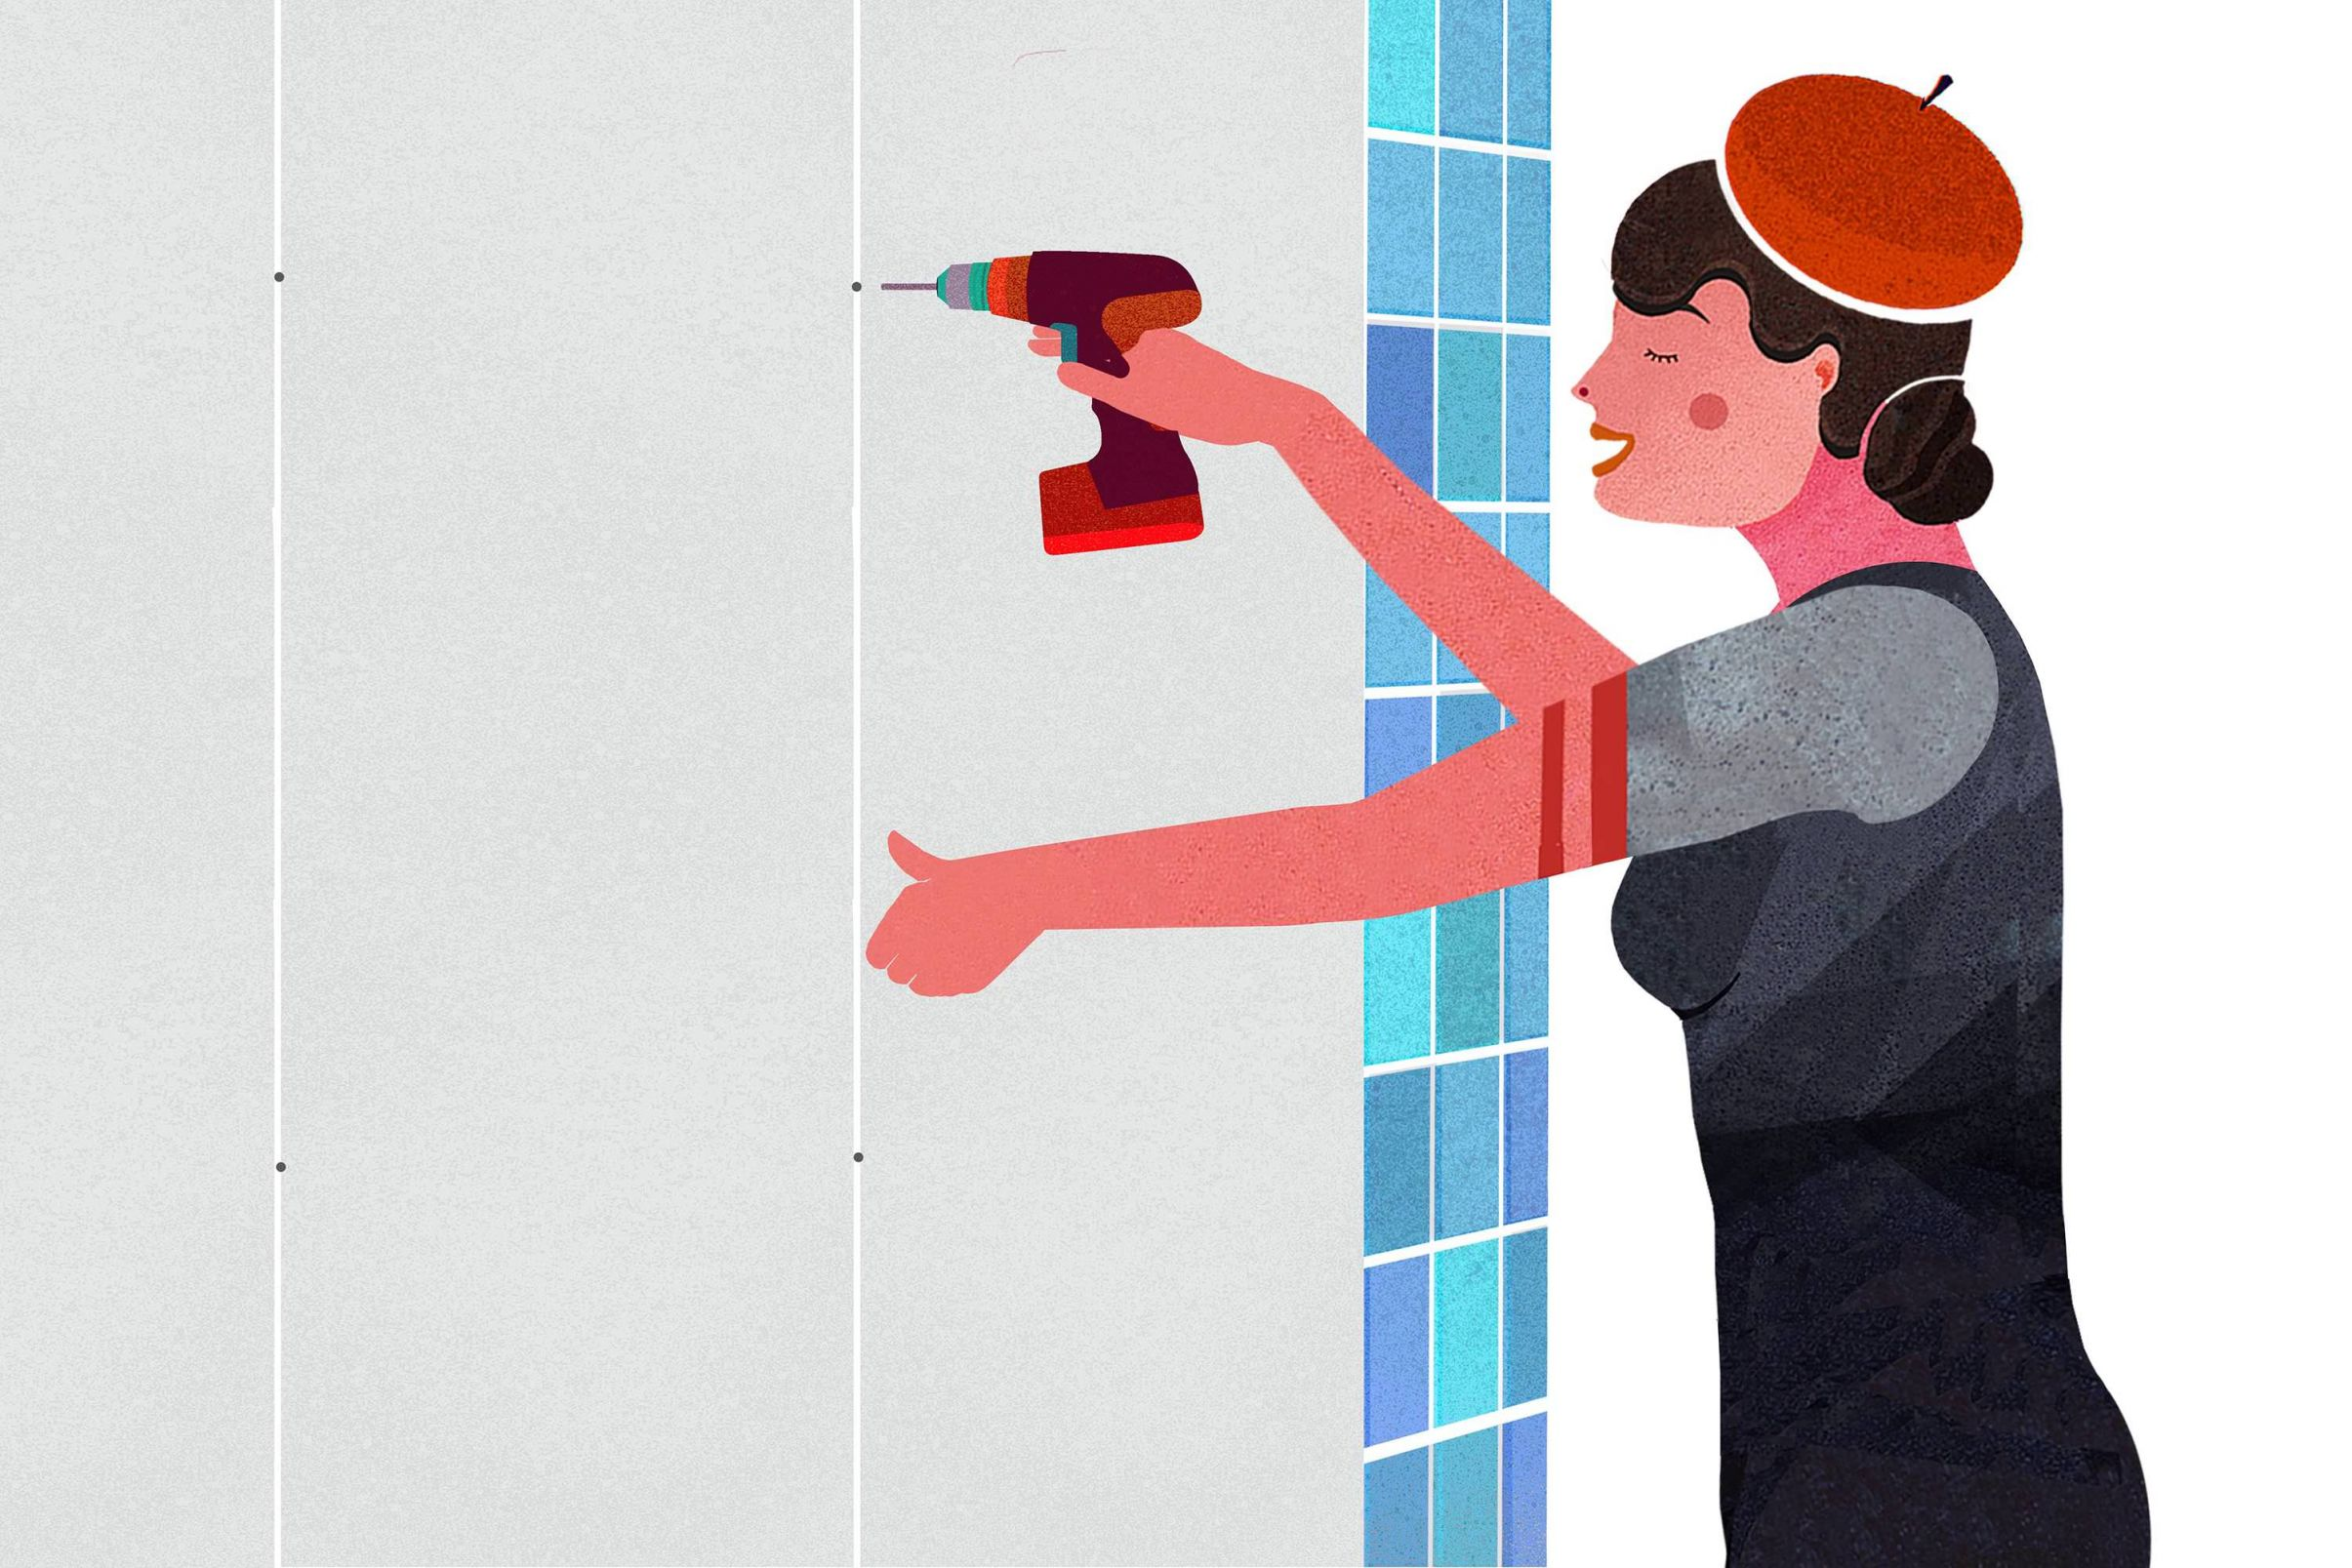 How-to-wallpaper-in-the-bathroom-Mounting-plasterboard-panelling-drilling-holes-in-grouting